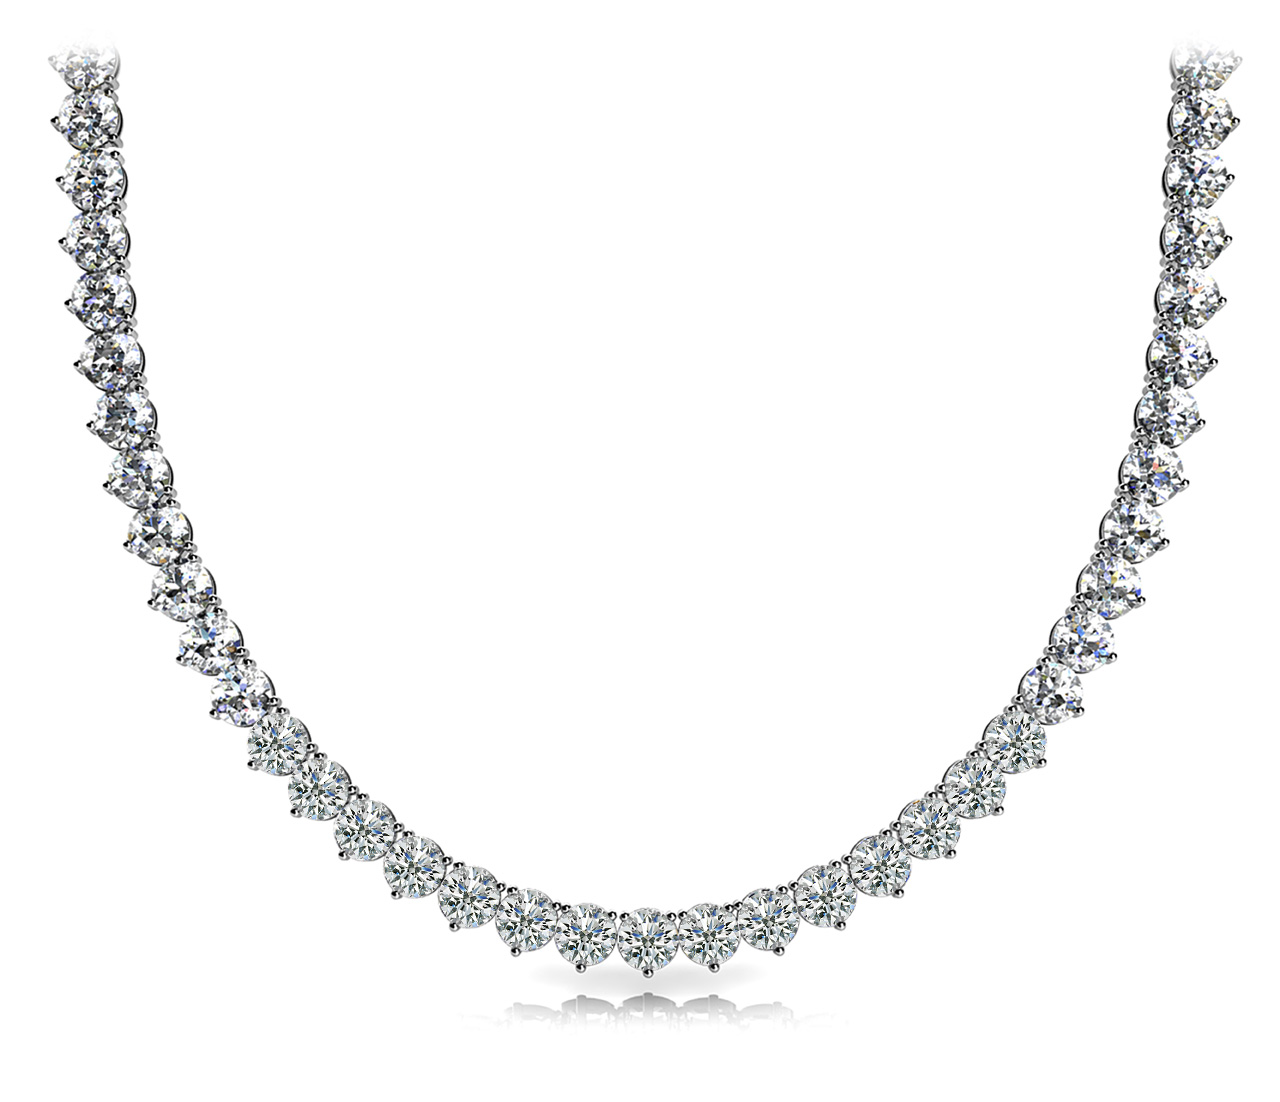 21.2 Carat Diamond Riviera Necklace